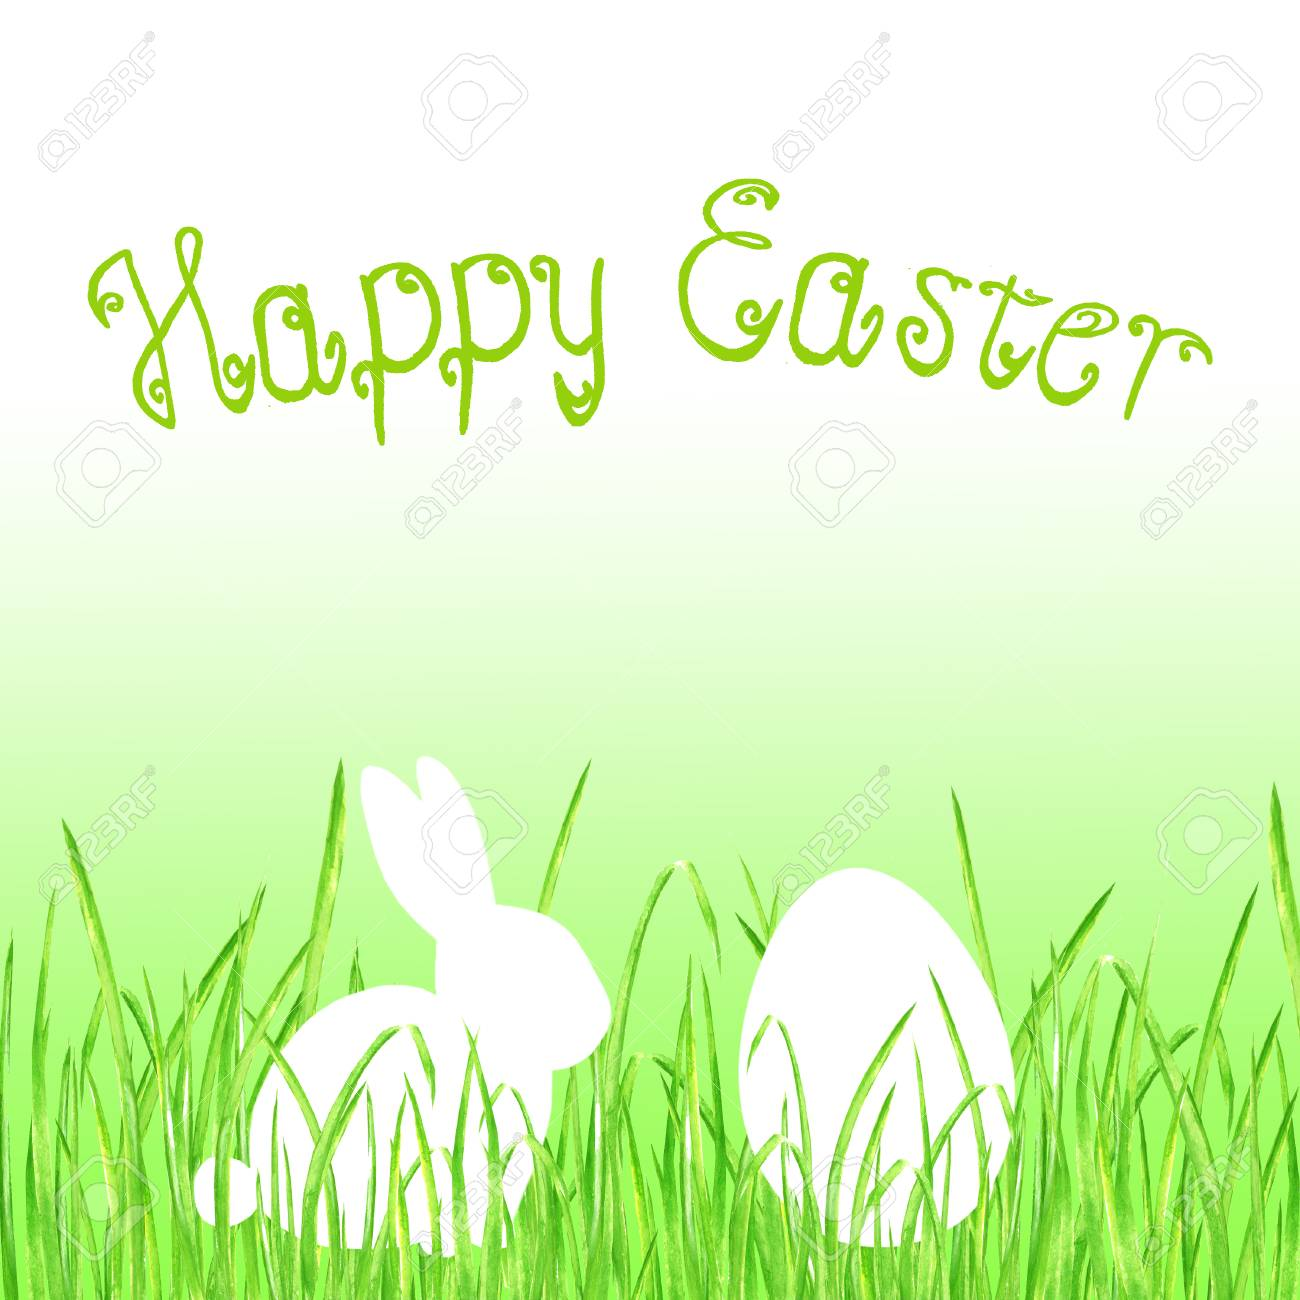 easter bunny rabbit egg hunt lime green gradient background happy easter template design hand drawn